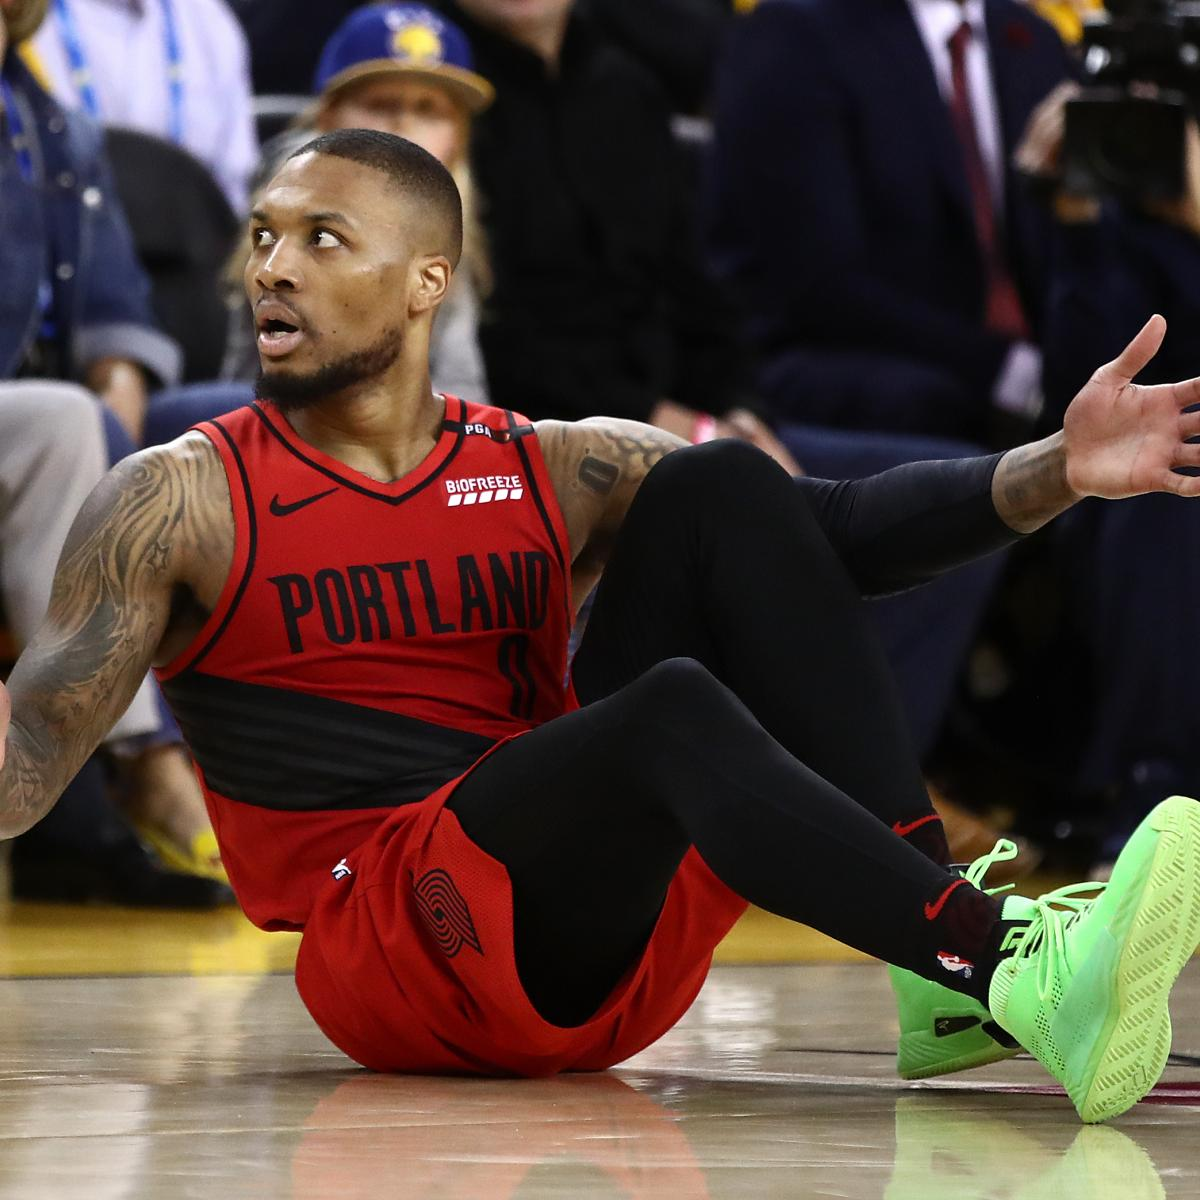 Portland Blazers Last Game: NBA: Andre Iguodala Didn't Foul Damian Lillard At End Of